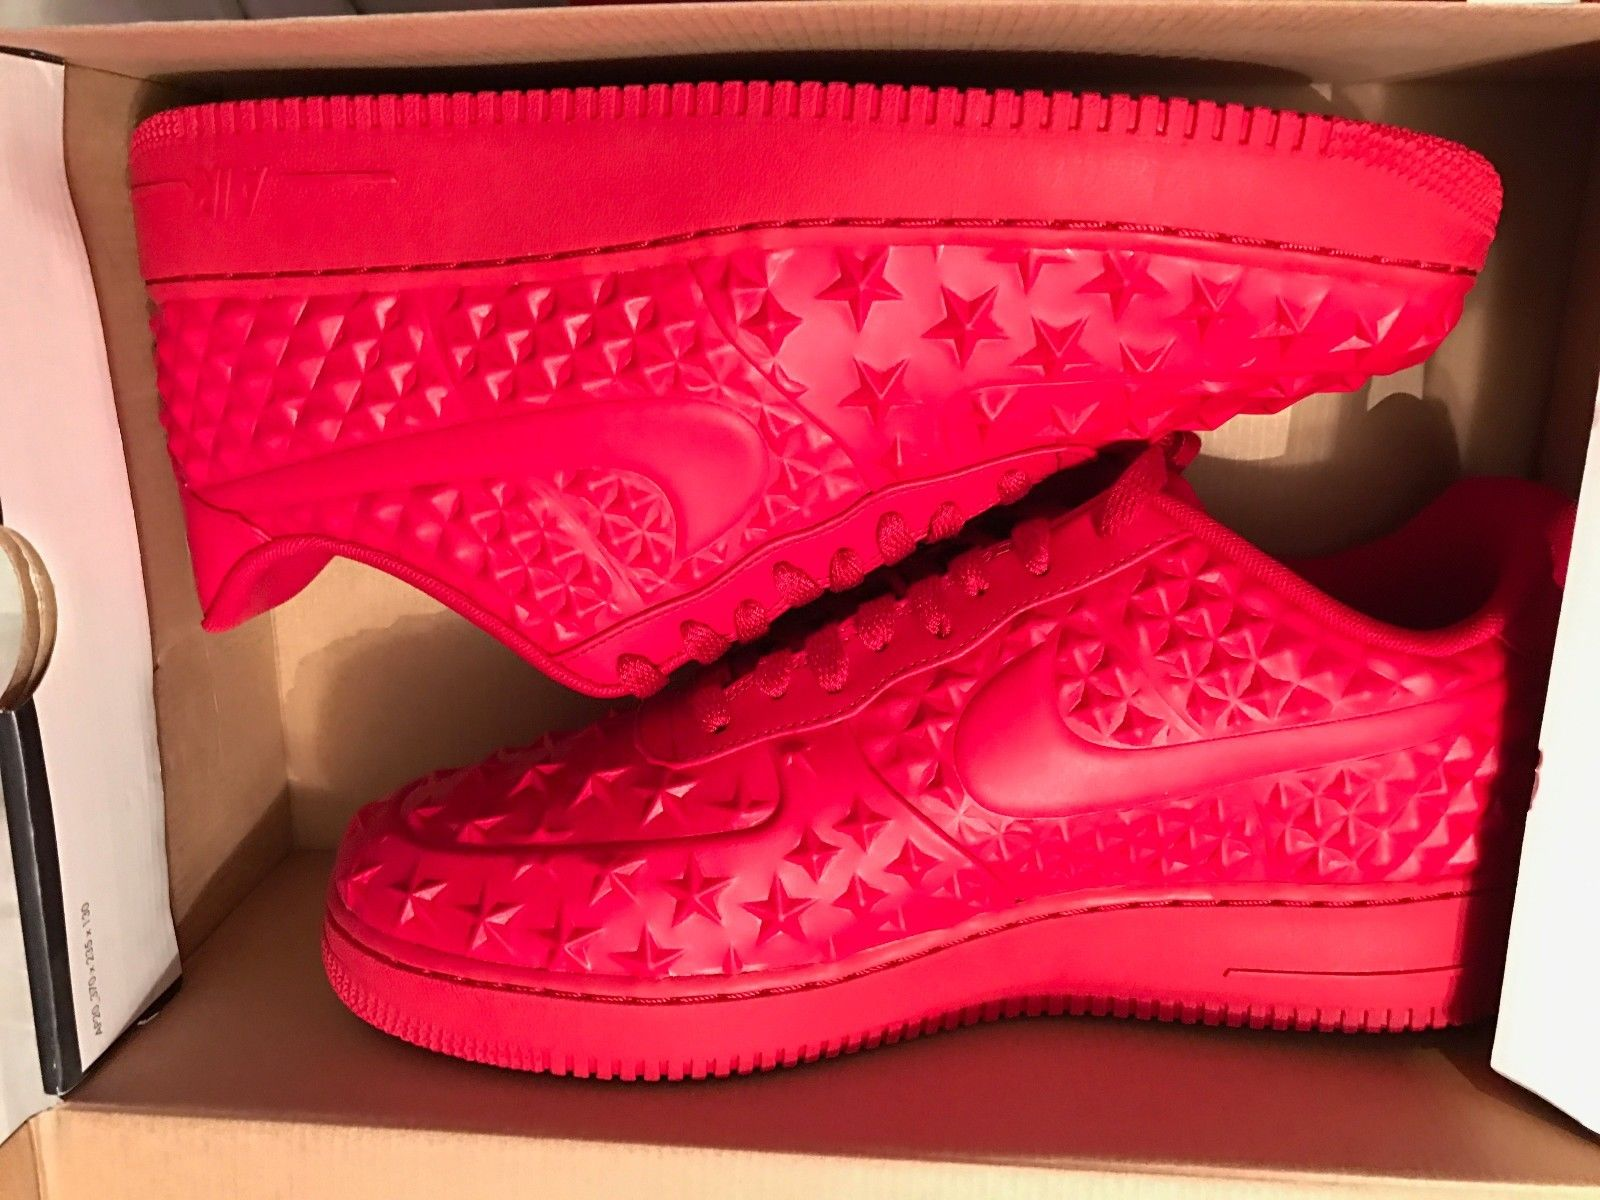 brand new b596d 75375 Image of New - Nike Air Force 1 LV8 VT Gym Red Oct - No Box